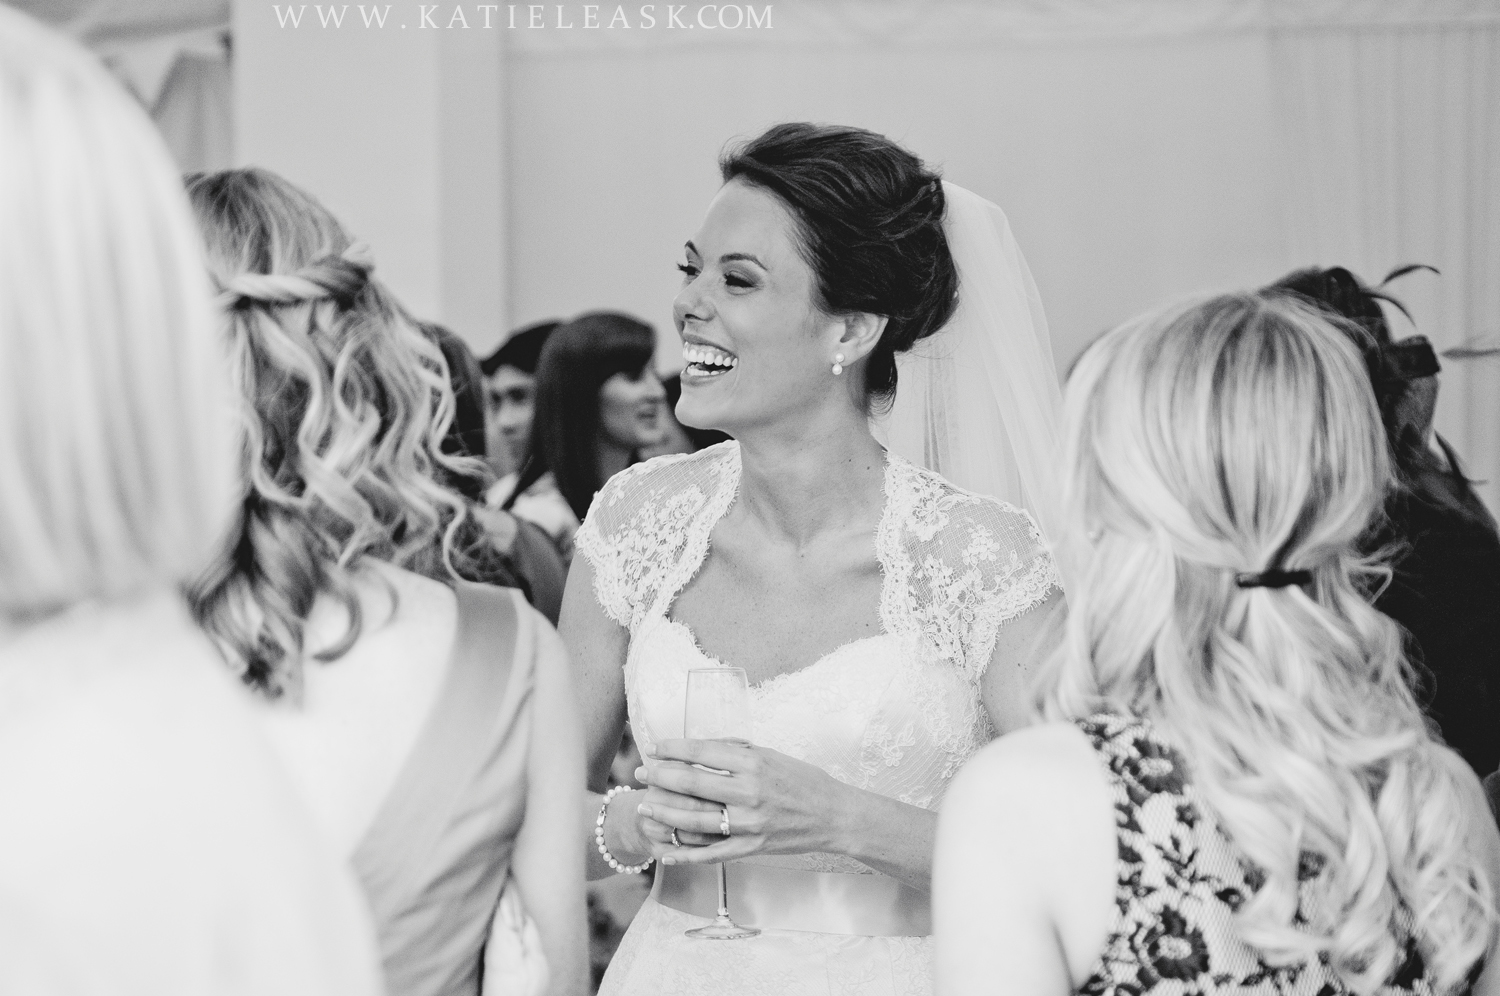 Katie-Leask-Photography-Wedding-05